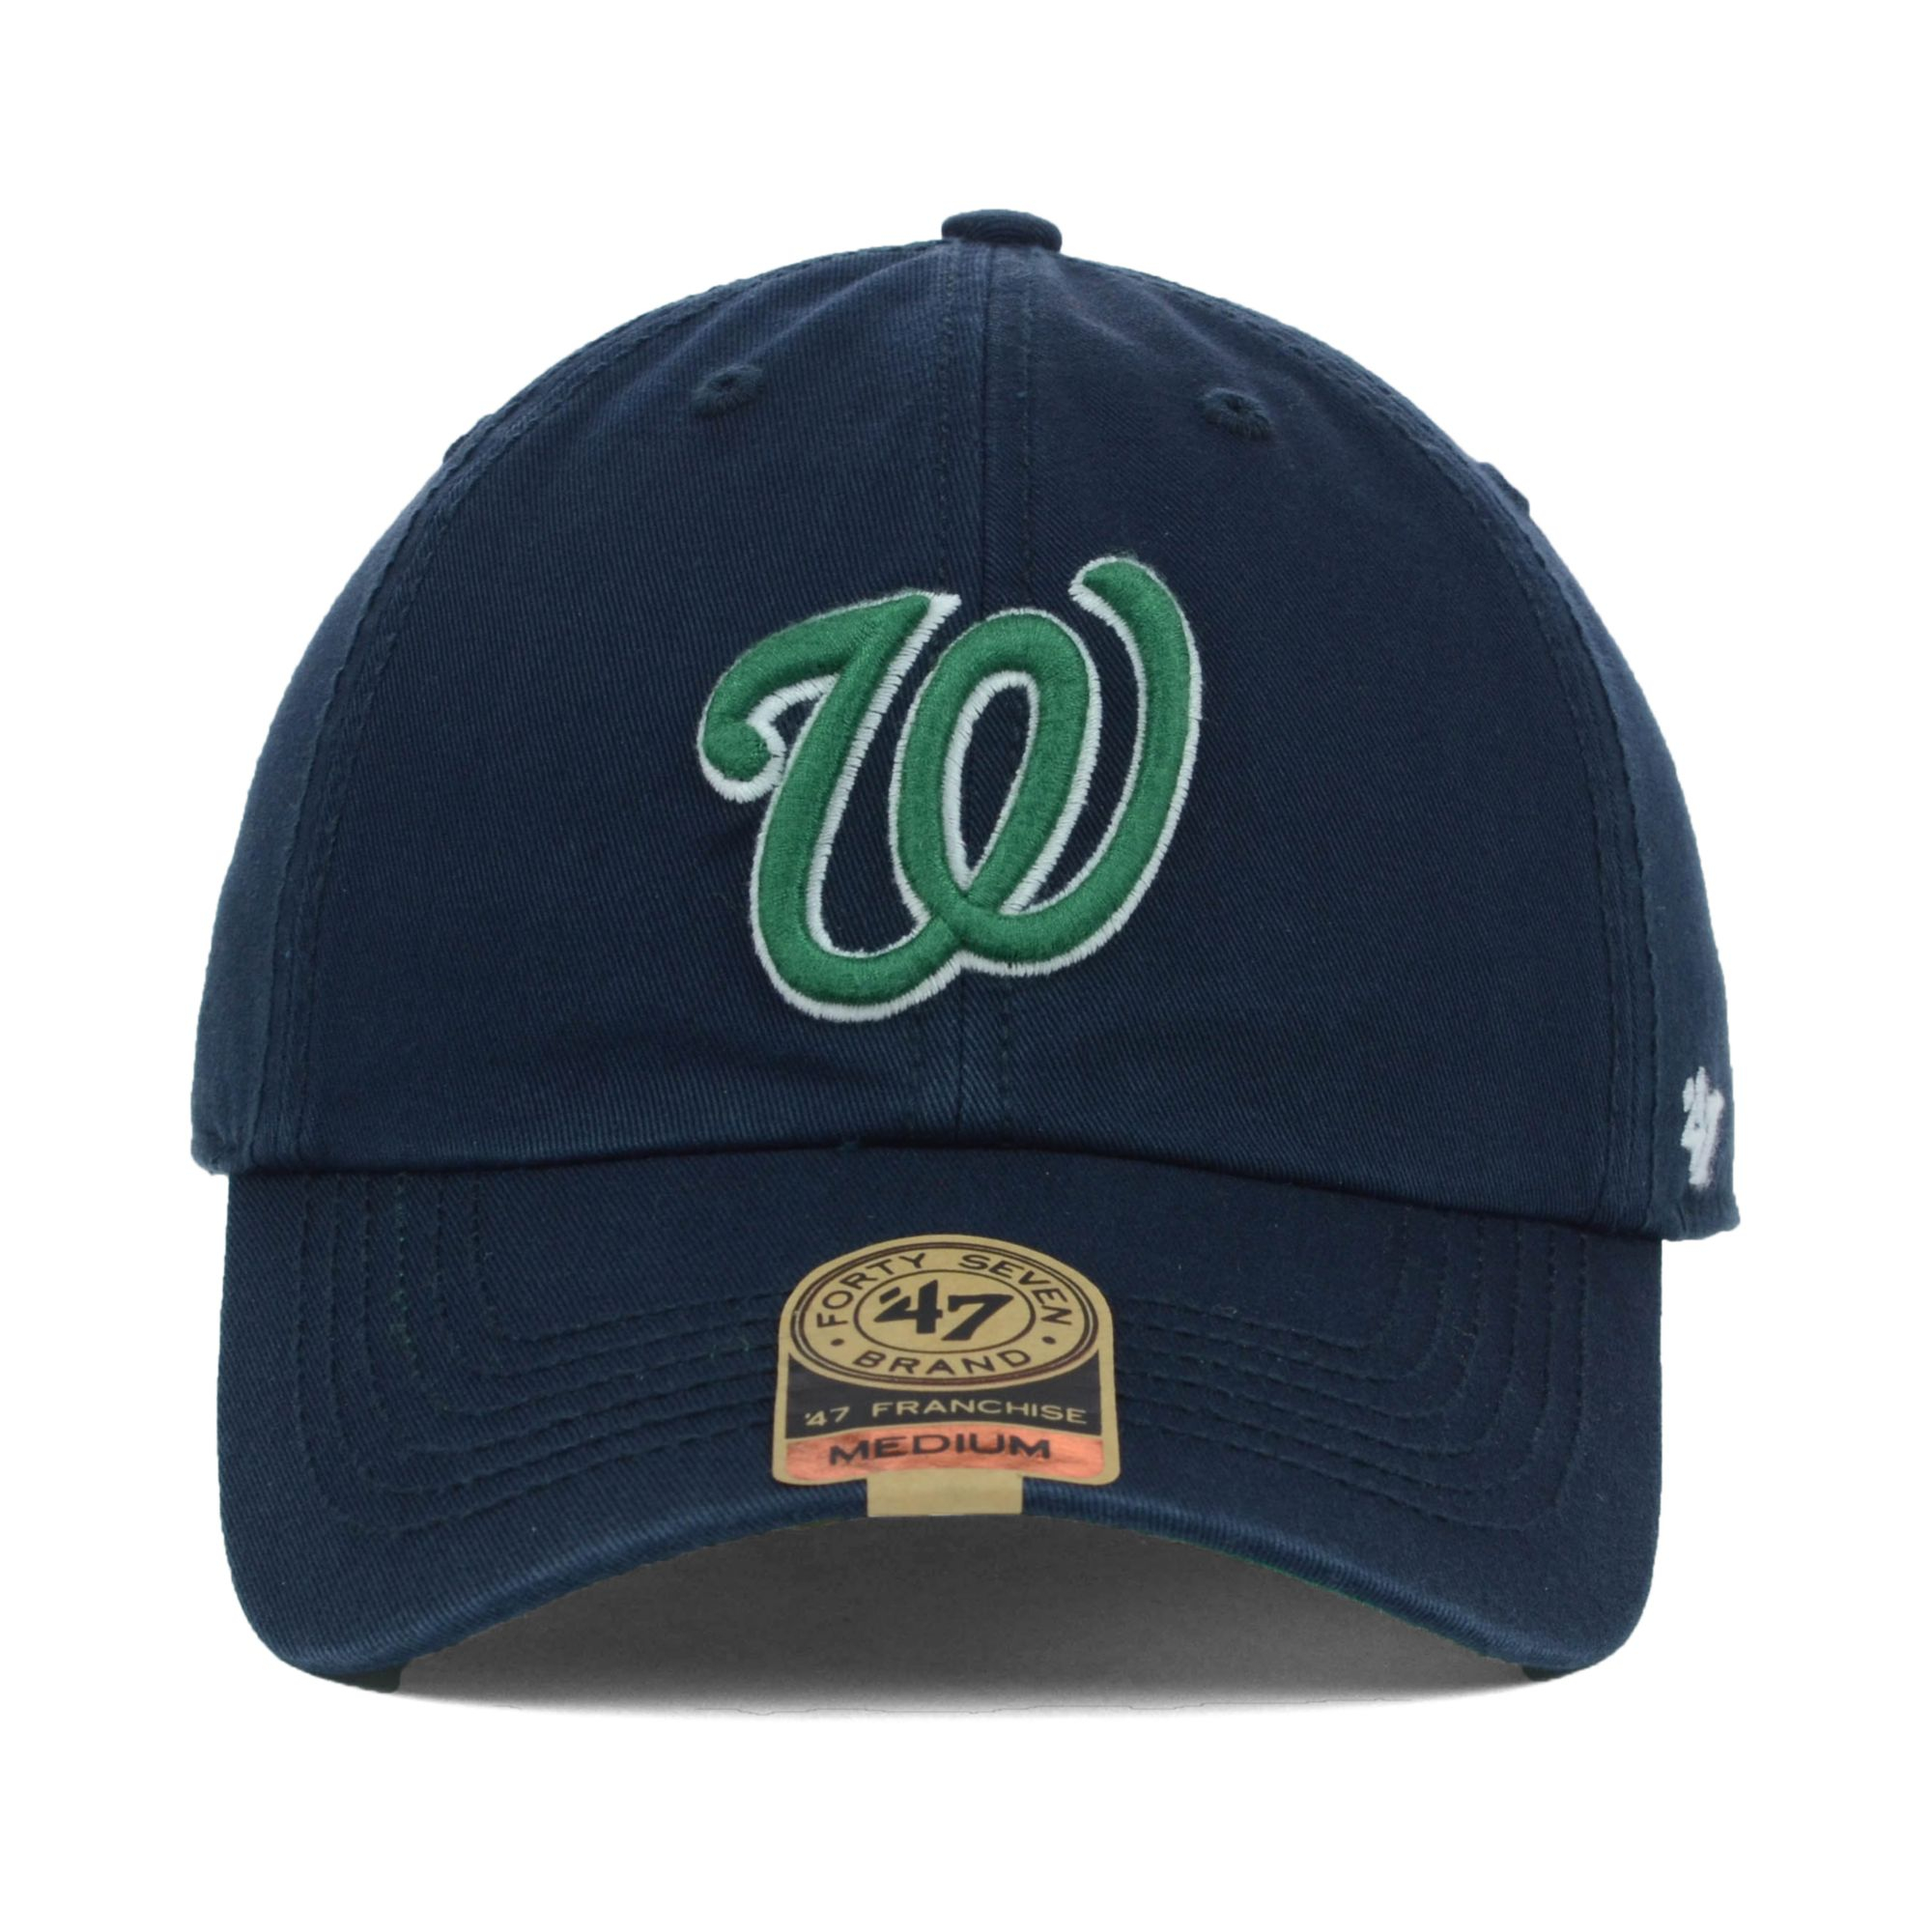 087cce26dcb76 ... authentic lyst 47 brand washington nationals mlb dublin cap in blue for  men 974b1 d1fca